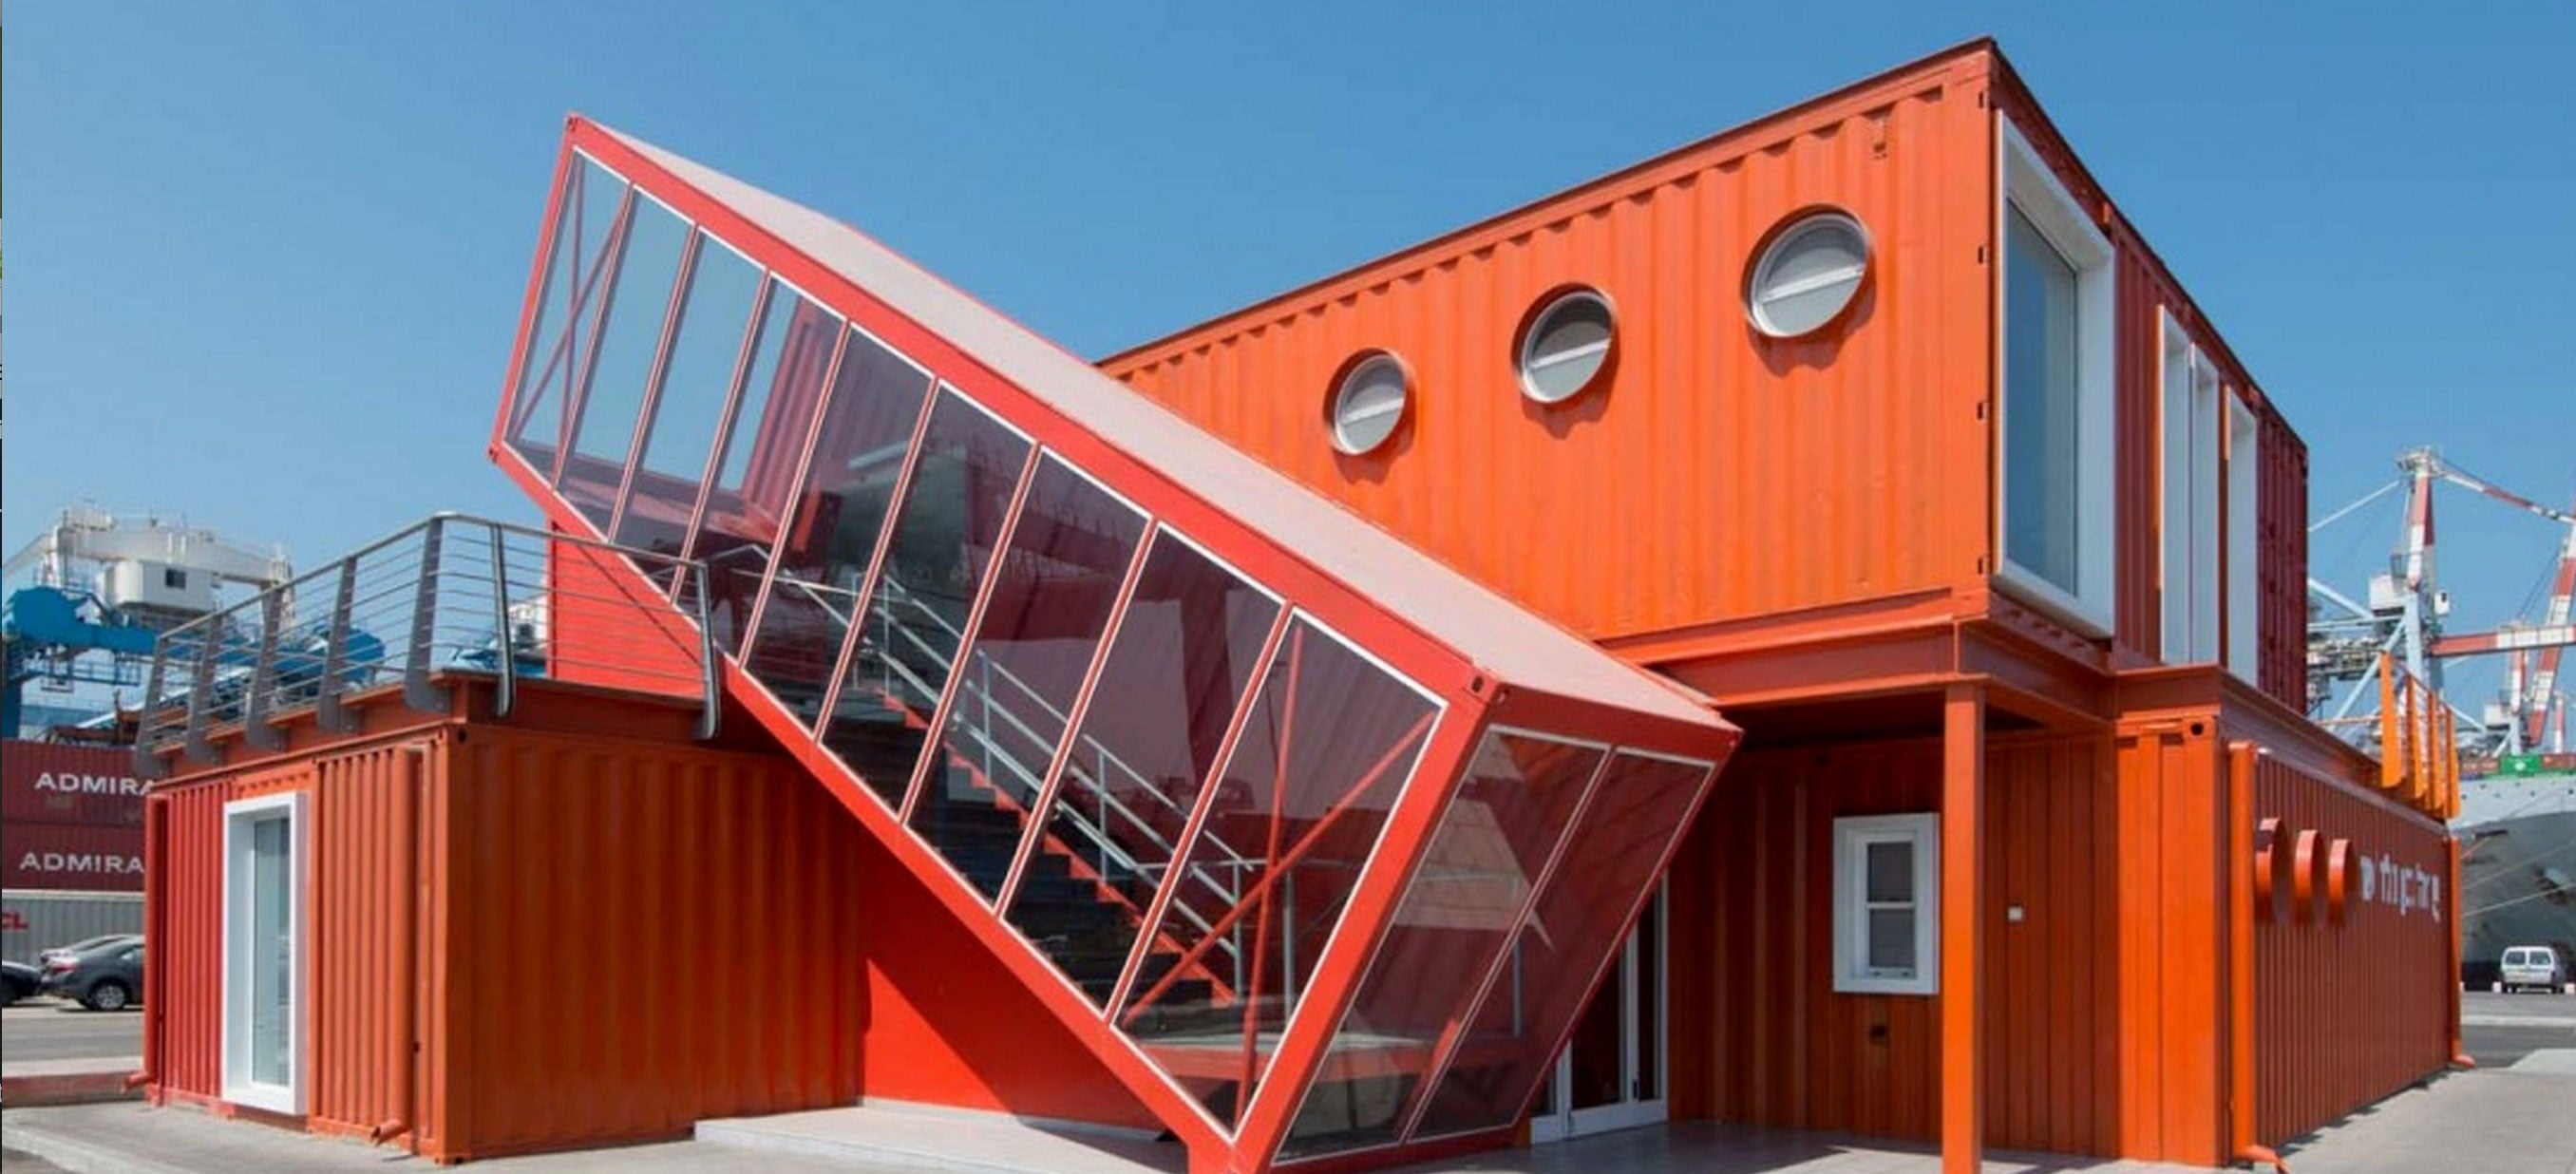 Shipping container offices are right at home on an industrial seafront gizmodo australia - Homes made from shipping containers ...